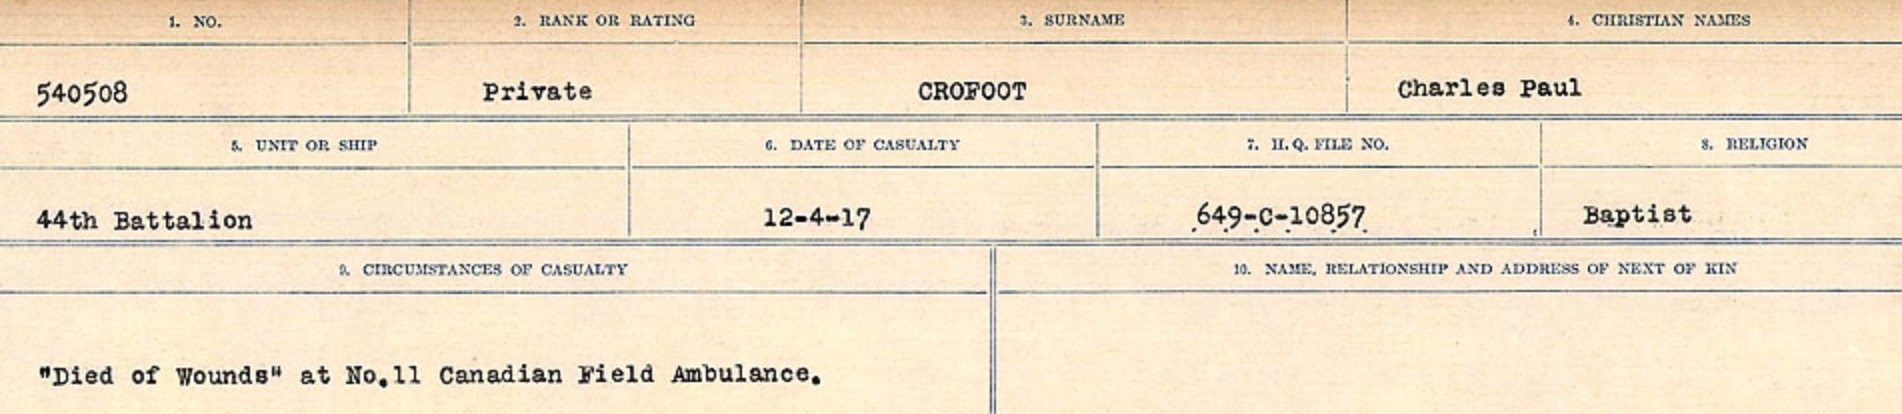 Circumstances of death registers – Source: Library and Archives Canada. CIRCUMSTANCES OF DEATH REGISTERS, FIRST WORLD WAR Surnames: CRABB TO CROSSLAND Microform Sequence 24; Volume Number 31829_B016733. Reference RG150, 1992-93/314, 168. Page 603 of 788.